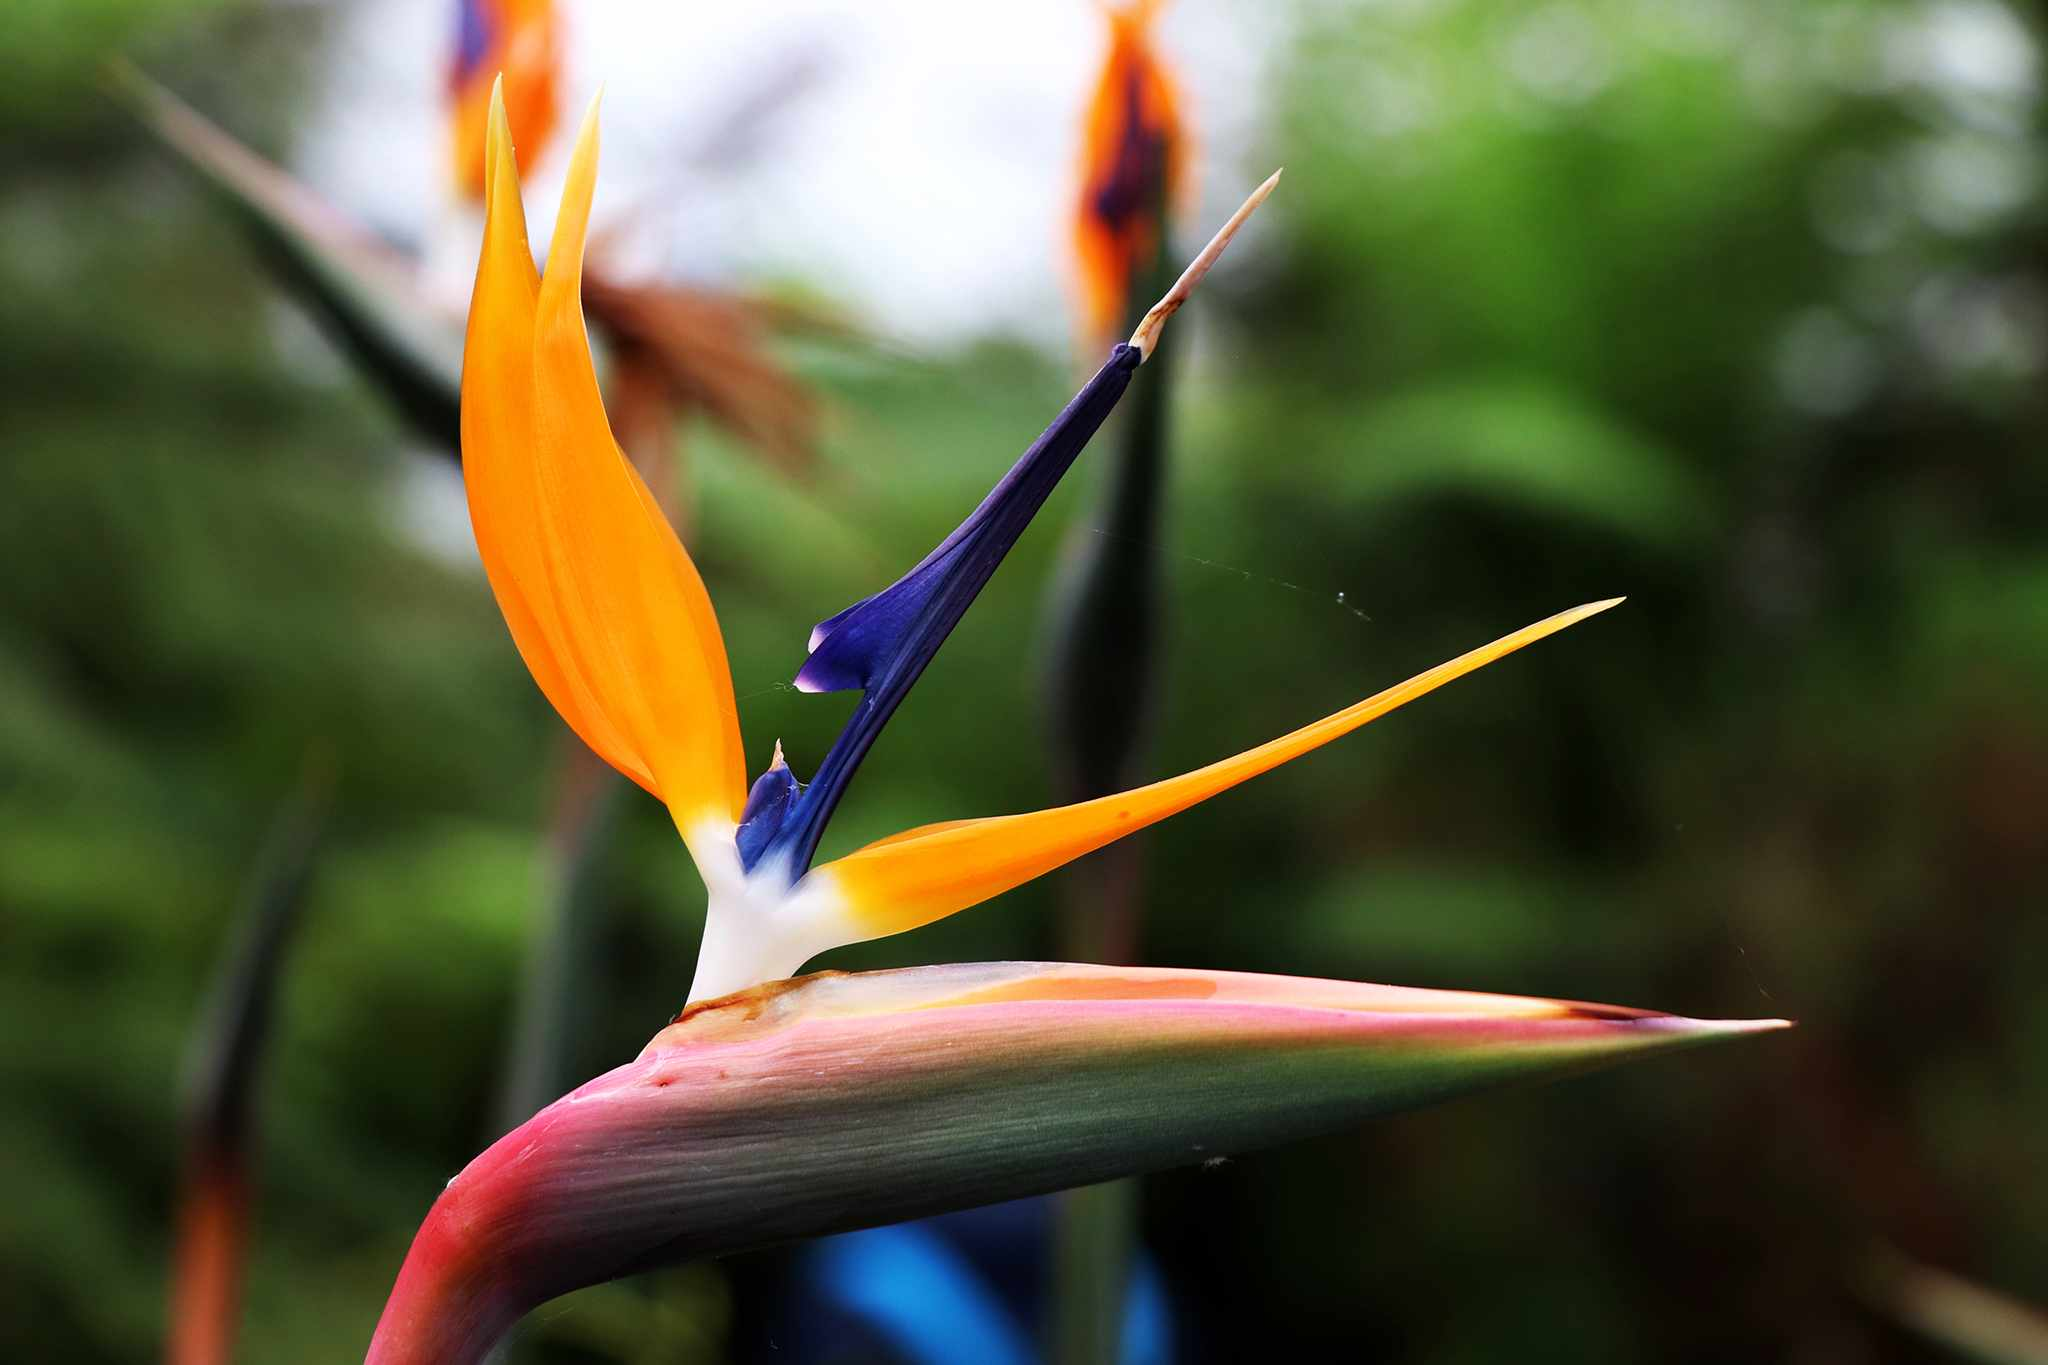 Bird of paradise, Strelitzia reginae, in flower. Photo: Getty Images.